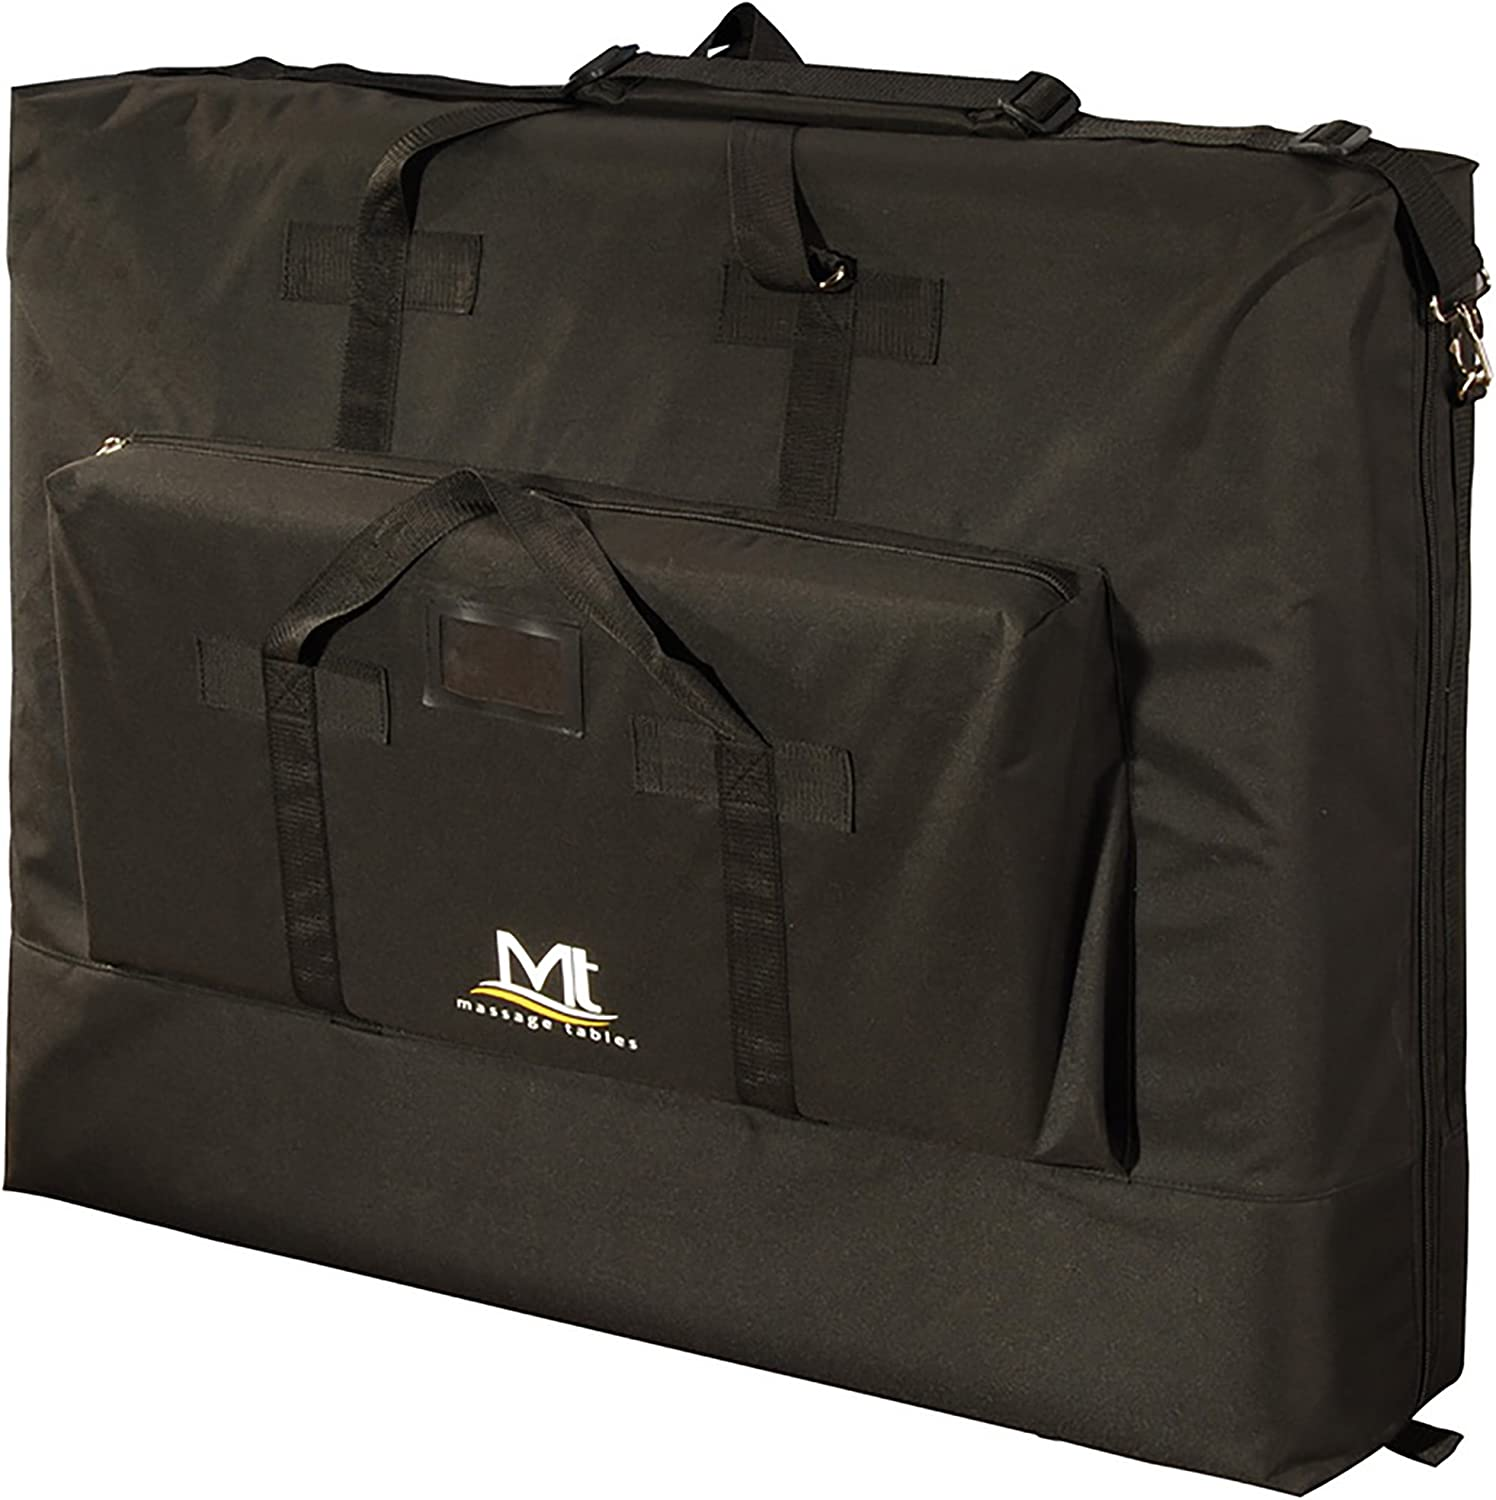 MT Massage Standard Carrying Case for 30 Massage Table